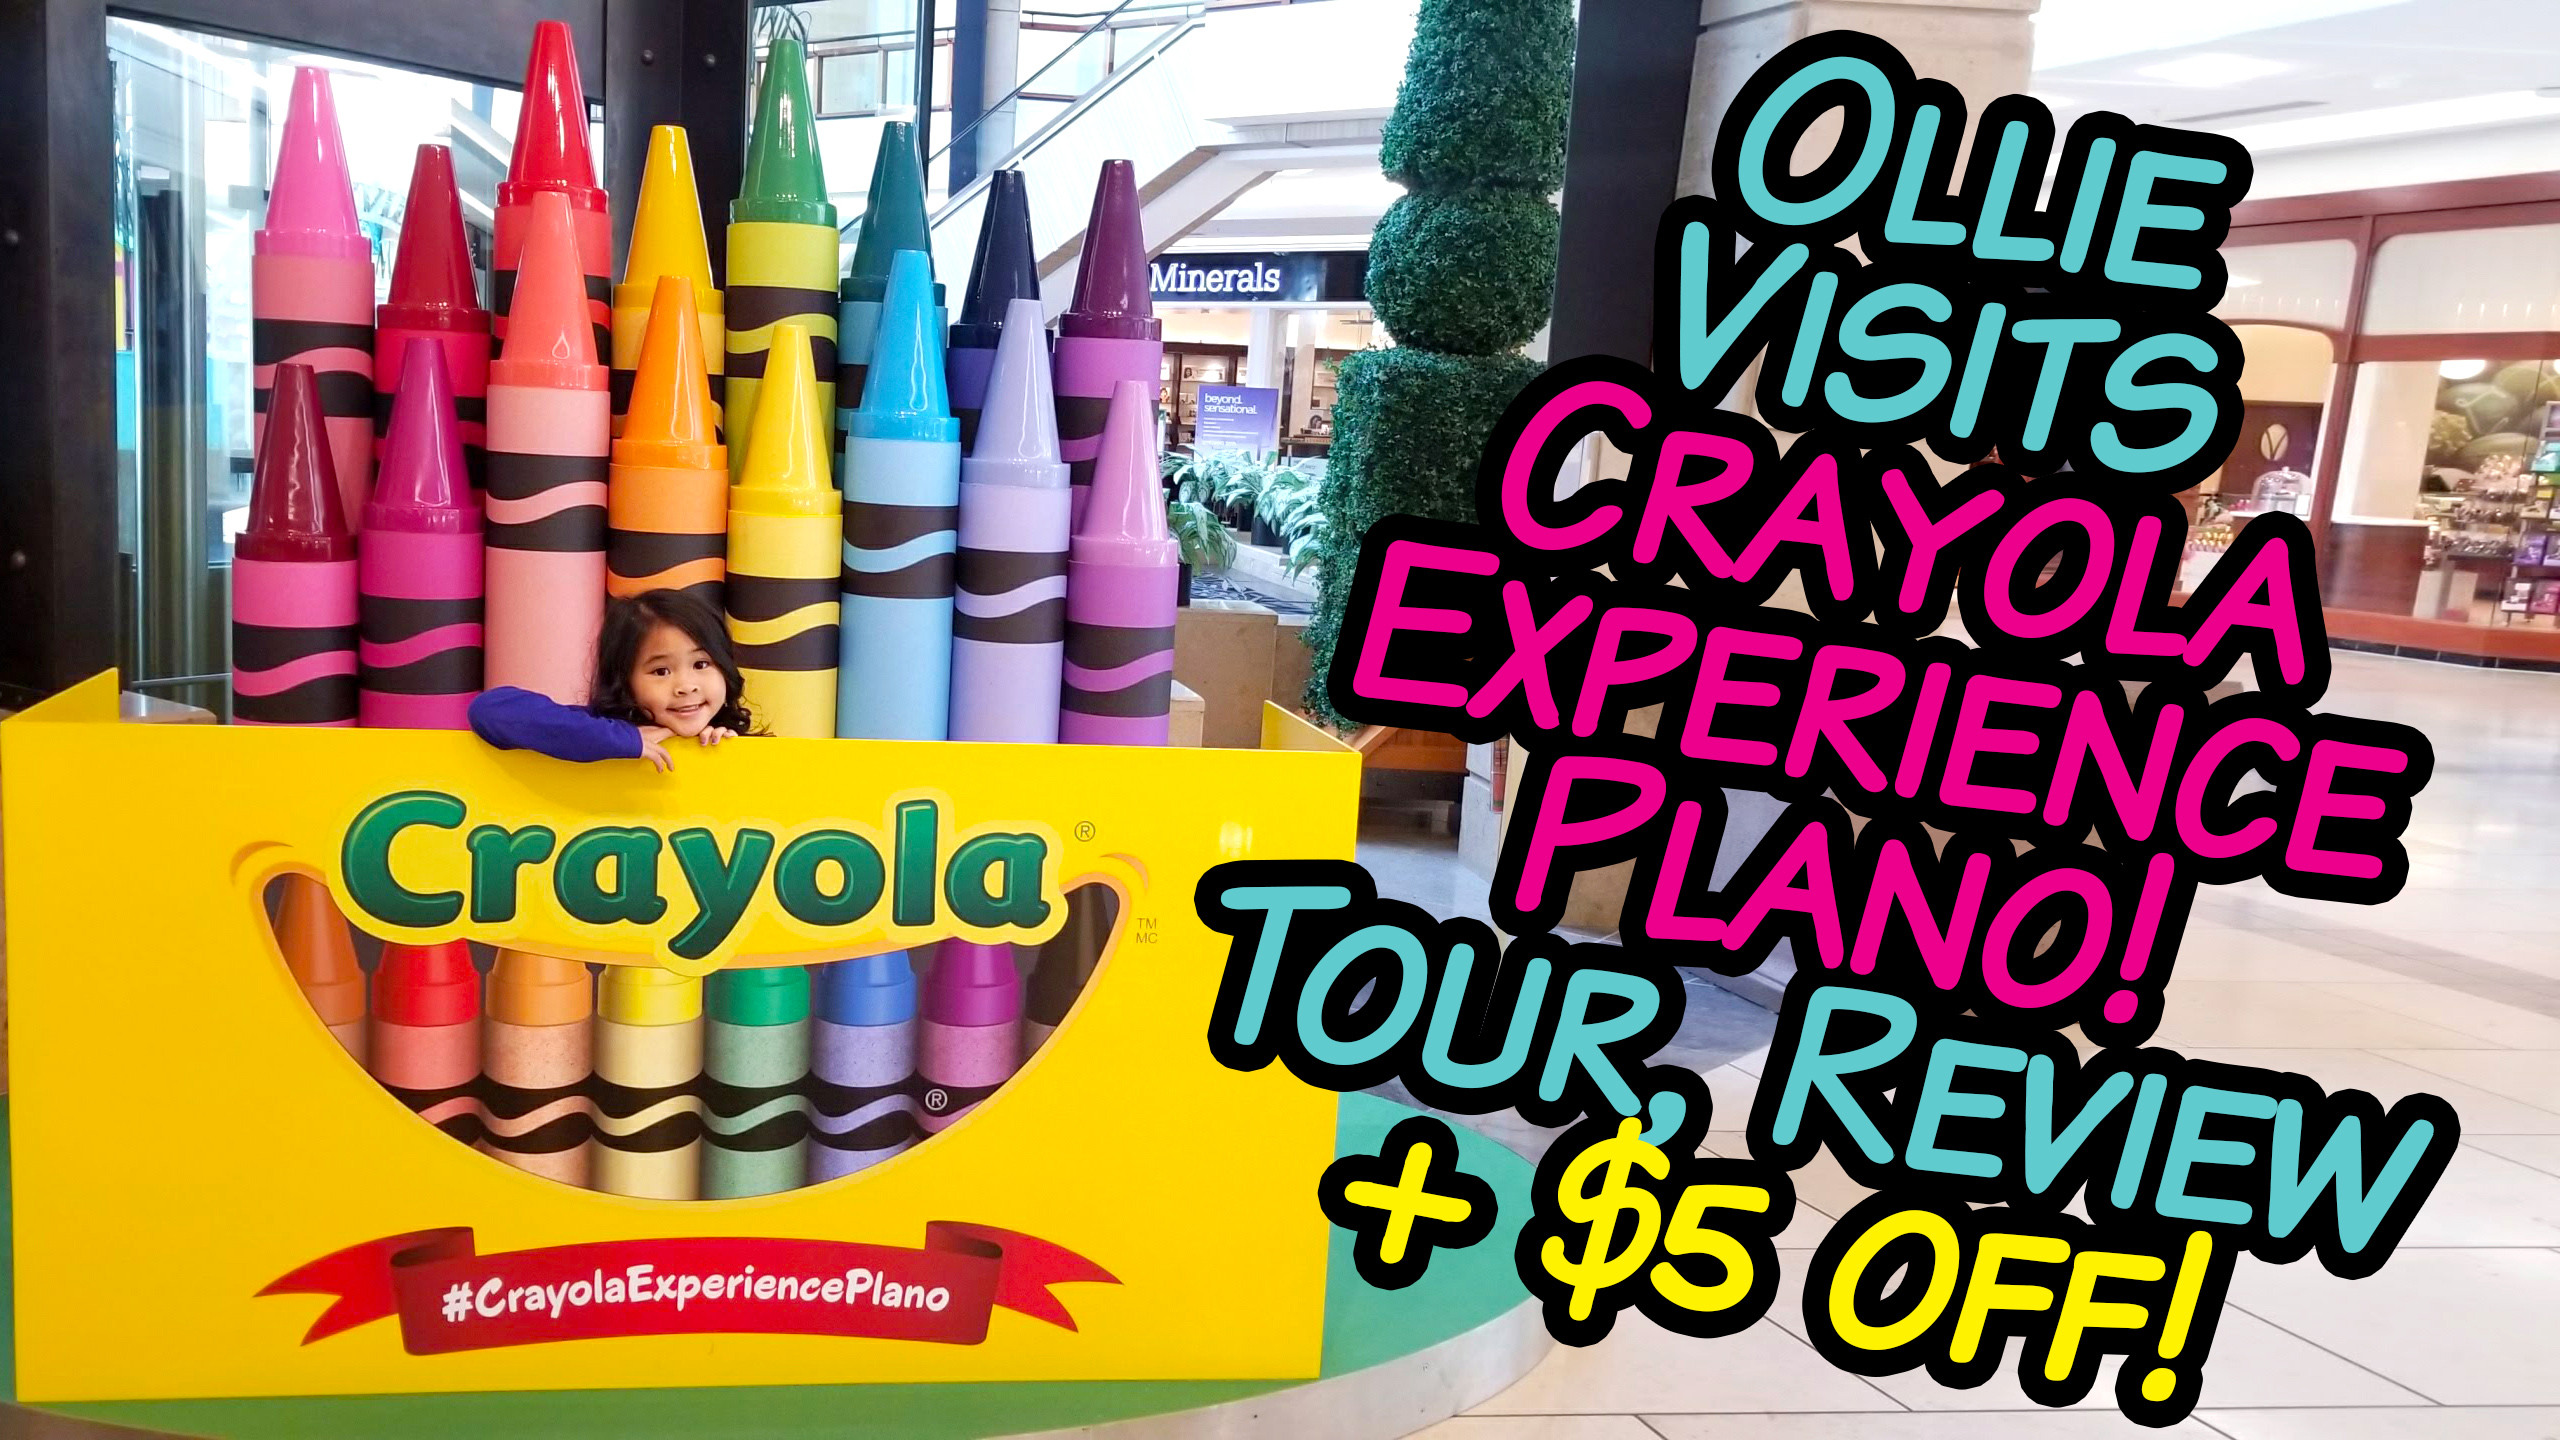 photograph about Crayola Coupons Printable titled $7 Crayola Working experience Coupon Code (all spots), Study